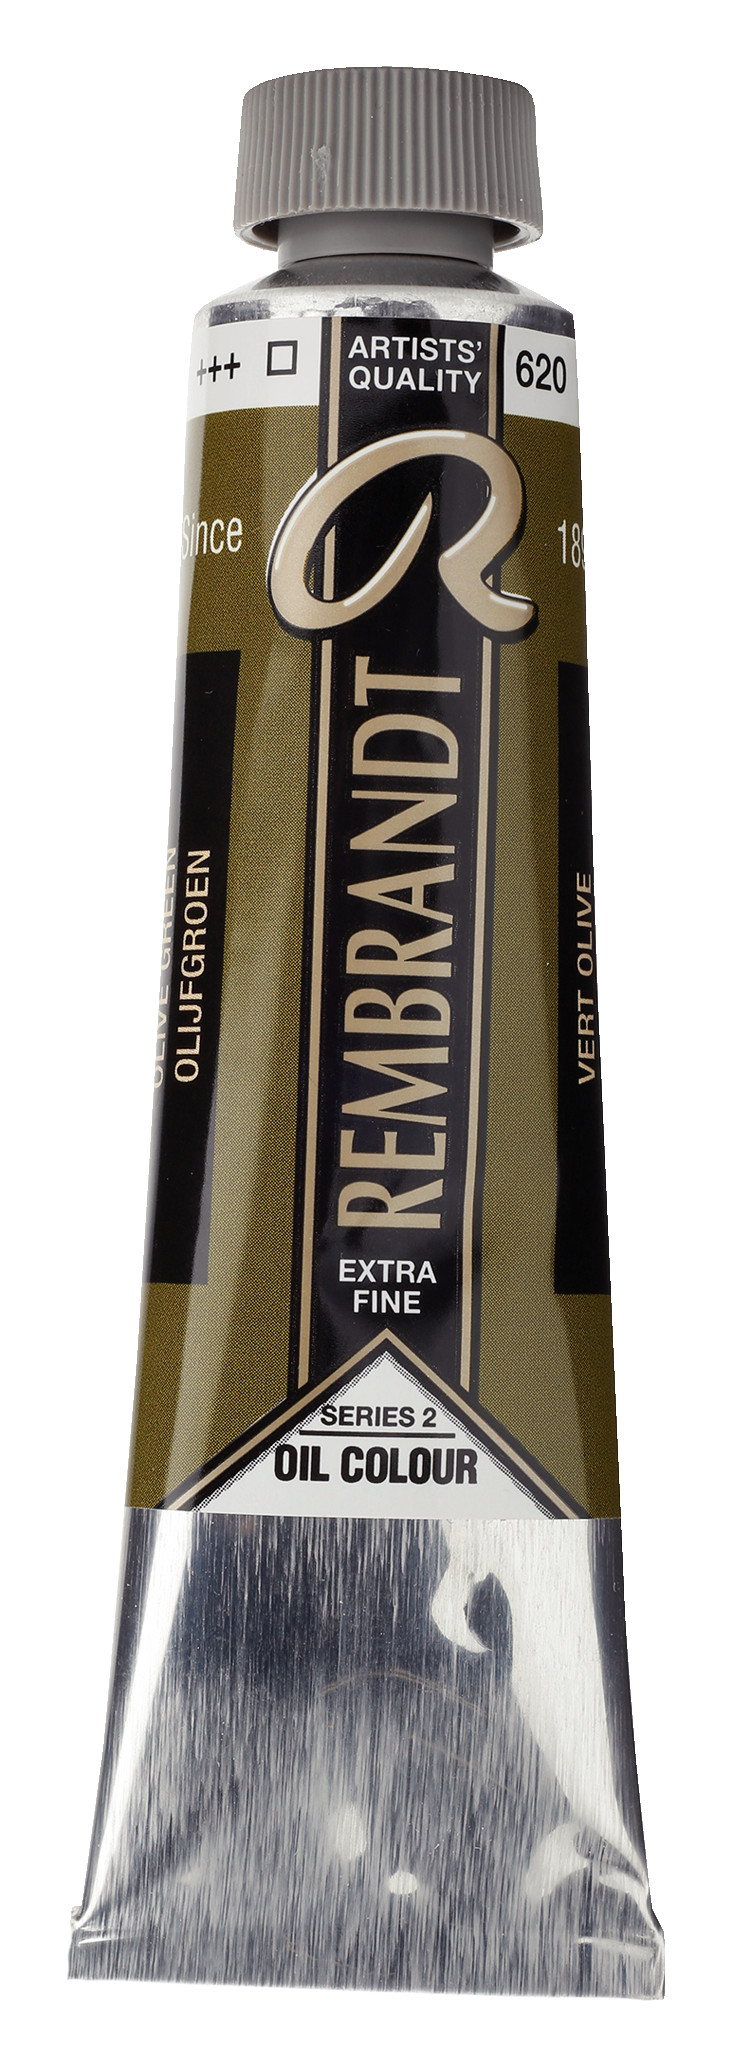 Rembrandt Oil colour Paint Olive Green (620) 40ml Tube